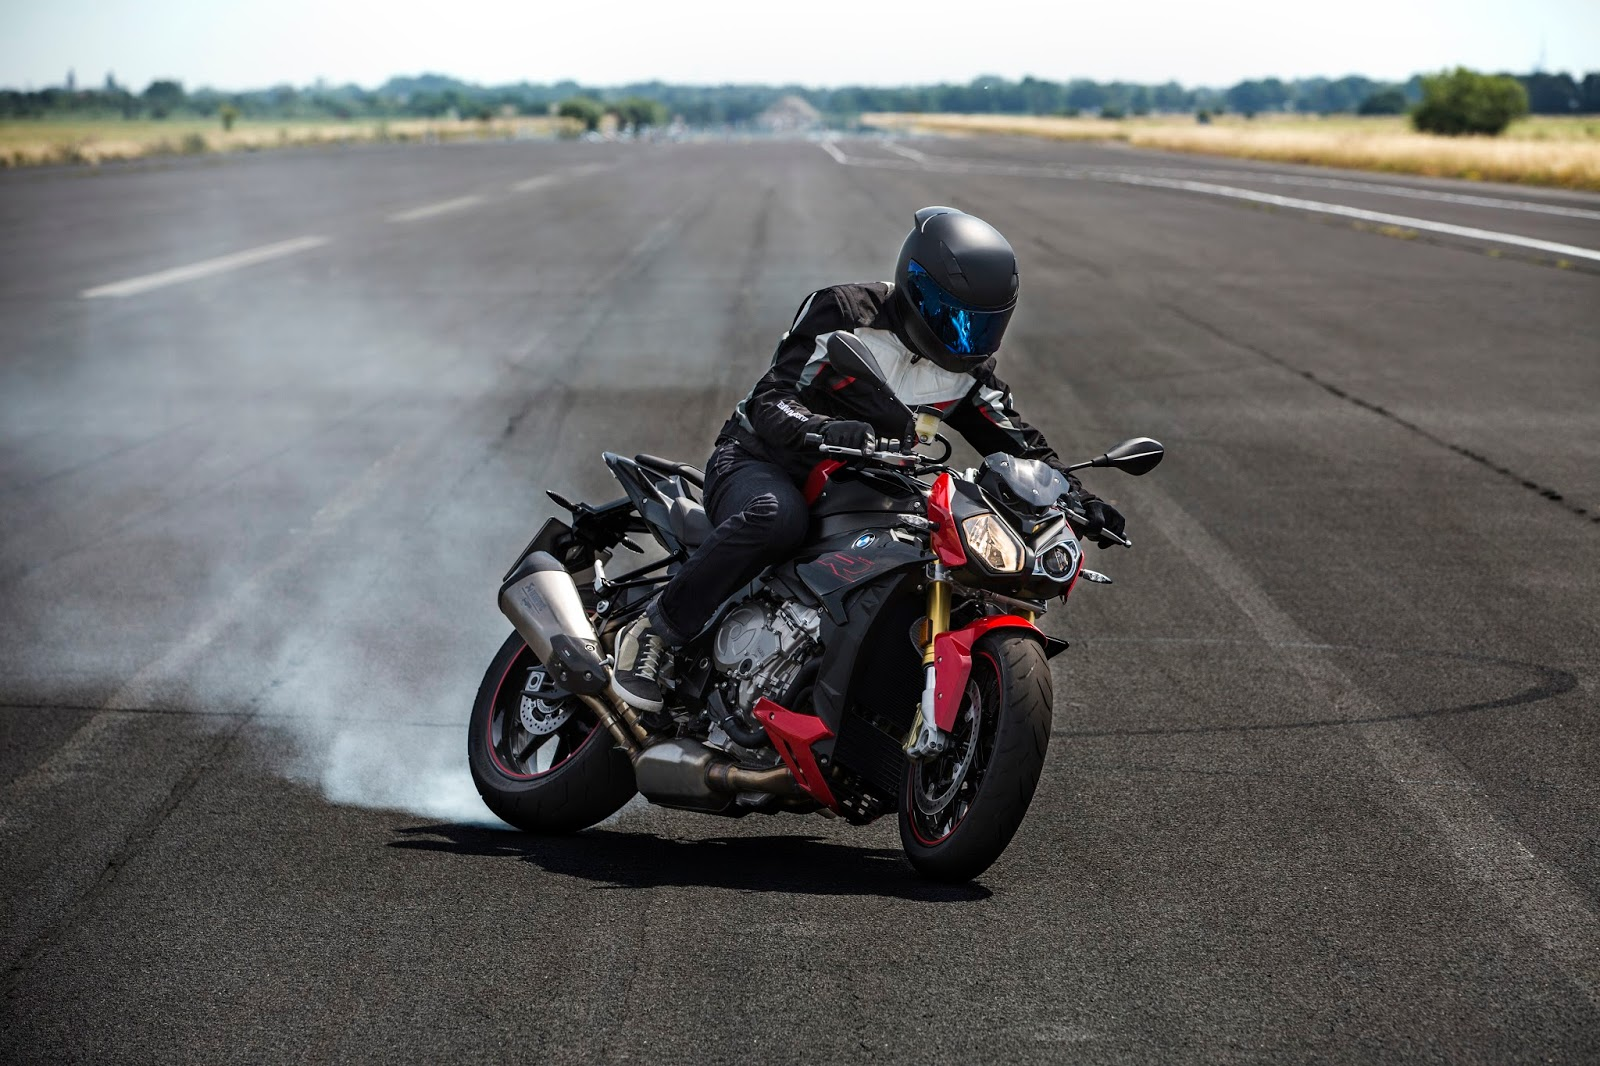 Bmw Motorrad Uk Evolution Continues For Bmw S 1000 R And S 1000 Rr